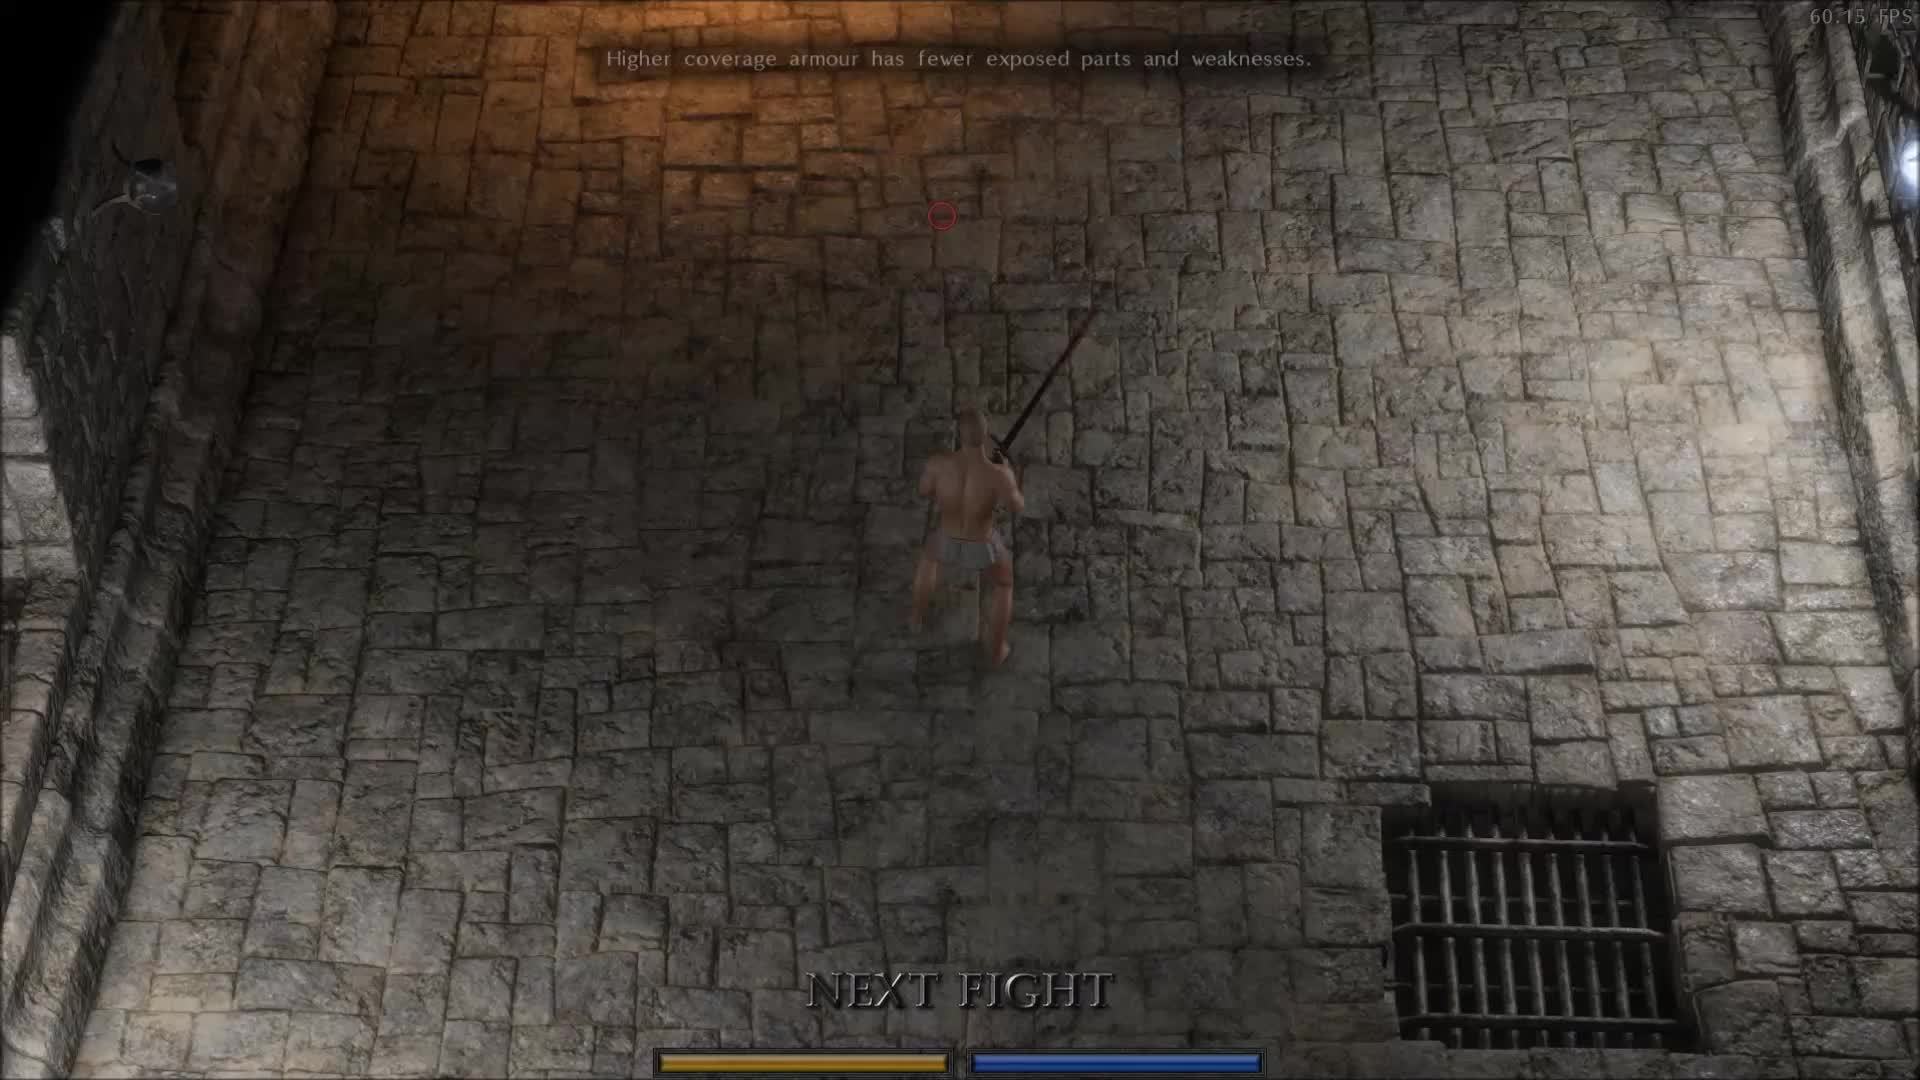 exanima, melee combat, sui generis, Left to right attack [Exanima] GIFs